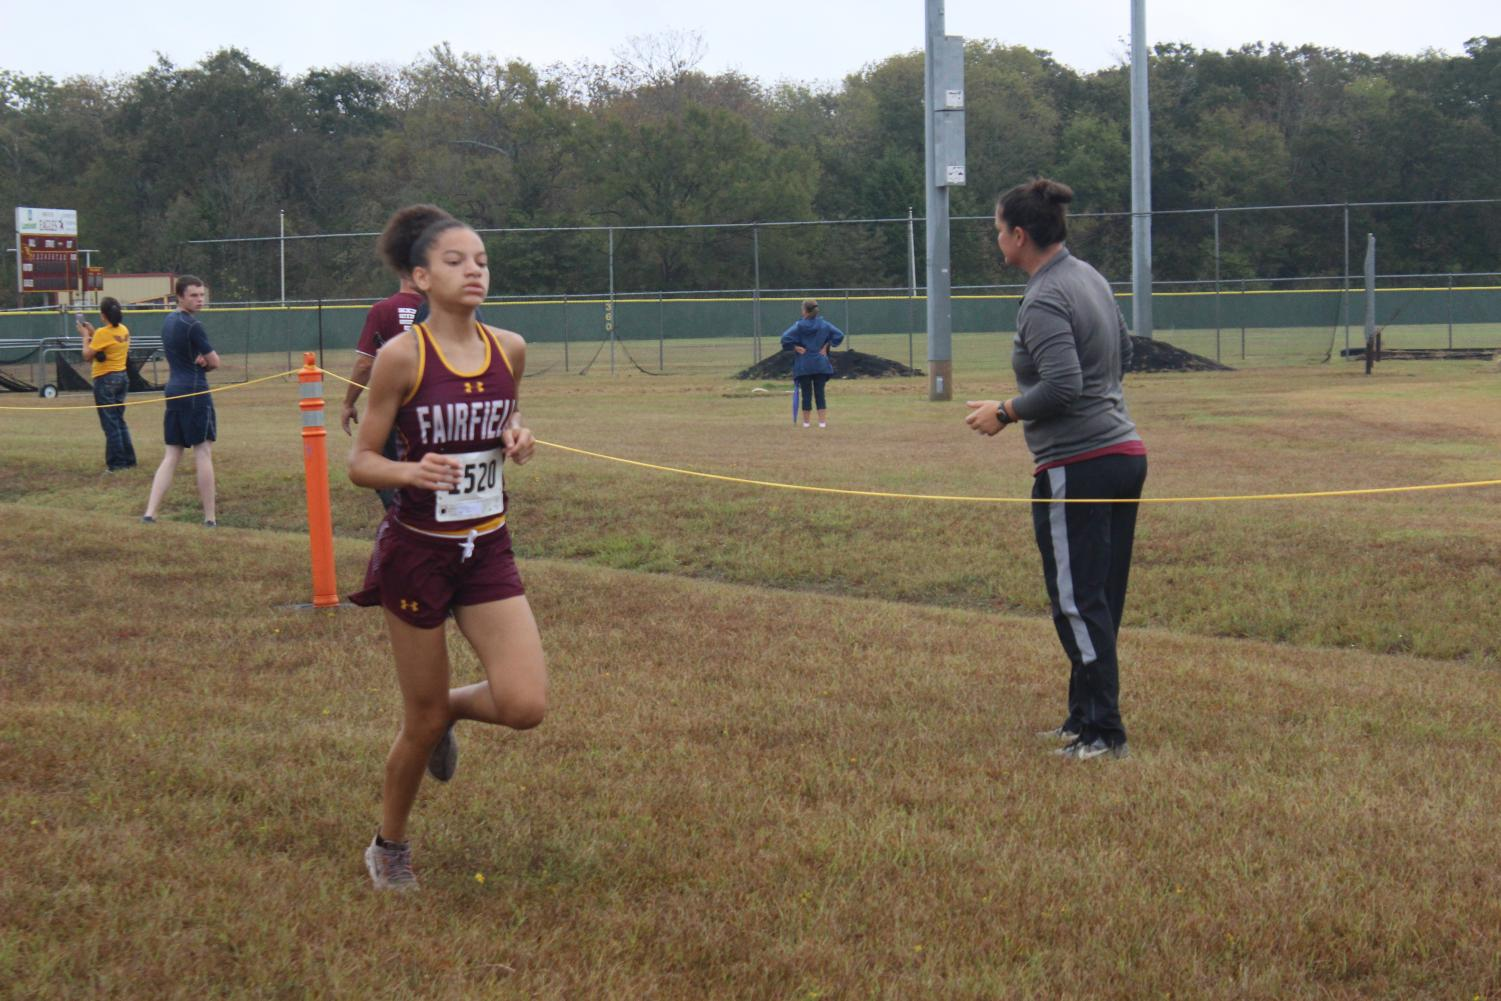 Sophomore Jarahle Daniels finishes first in the girls district meet, advancing to regional. Photo by Hailey Lane.